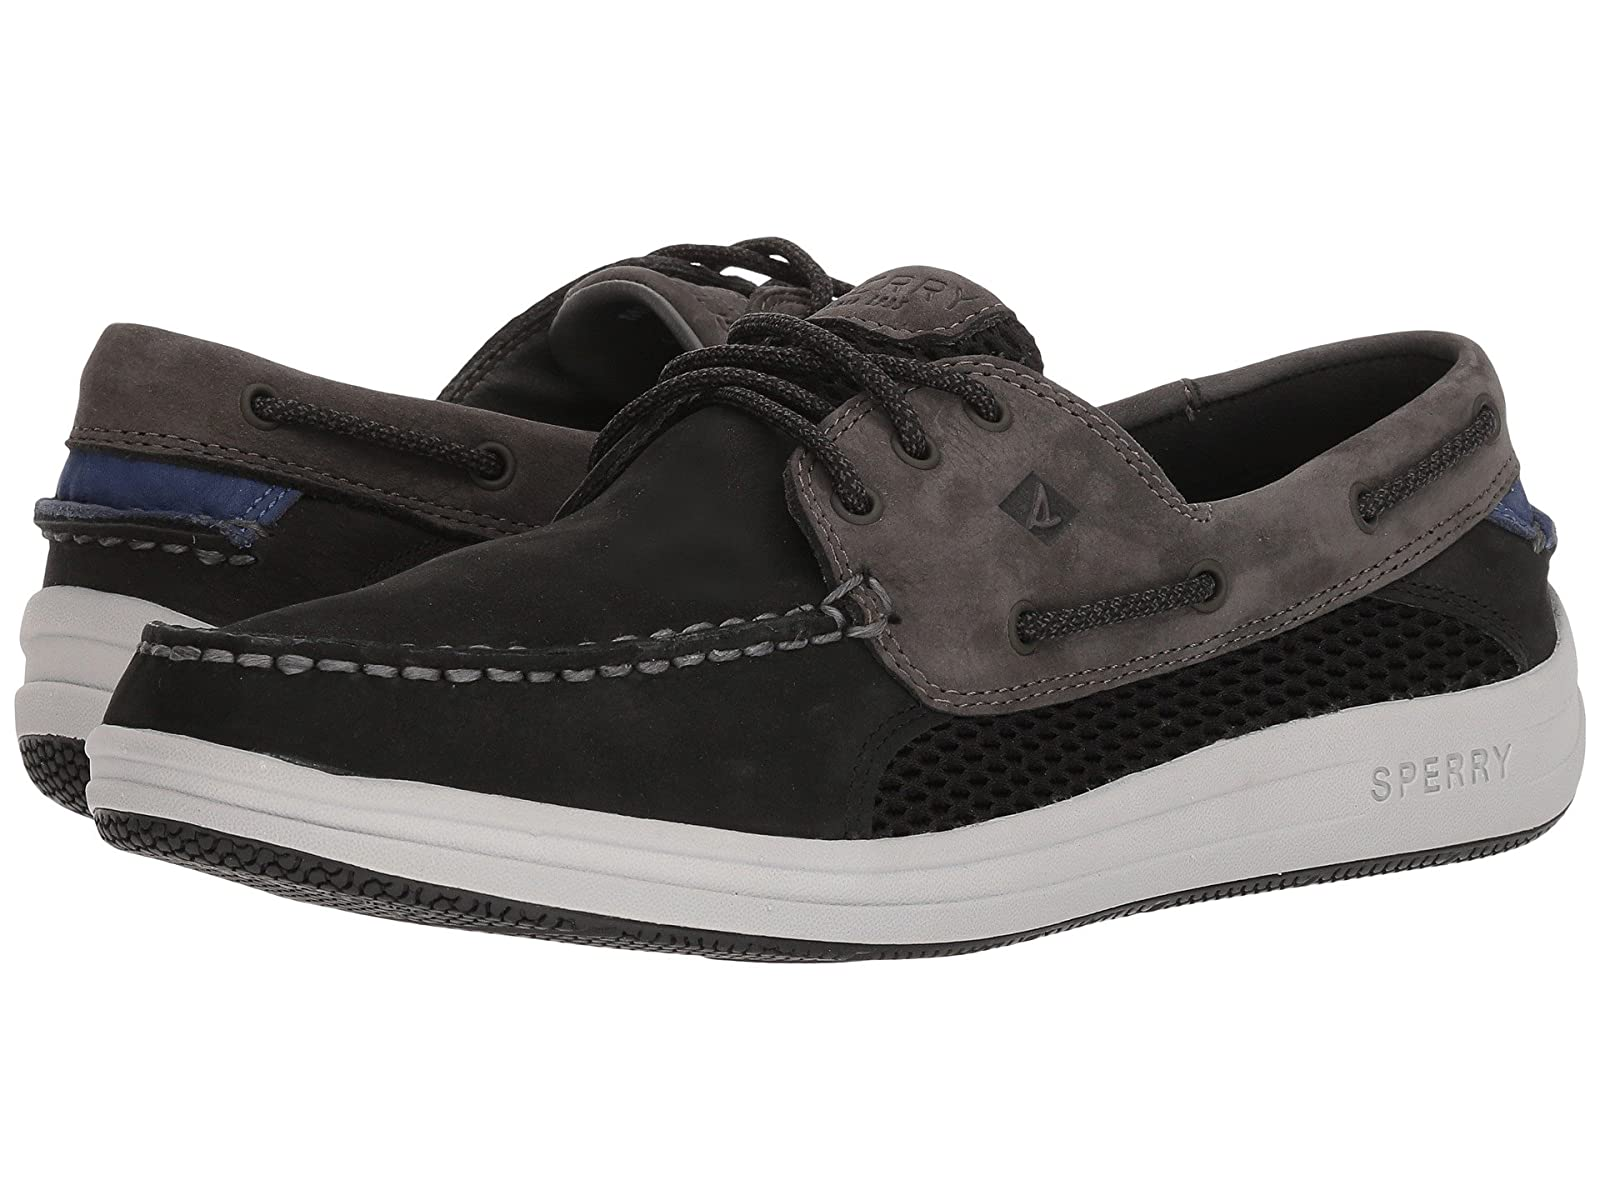 Sperry Gamefish 3-EyeSelling fashionable and eye-catching shoes